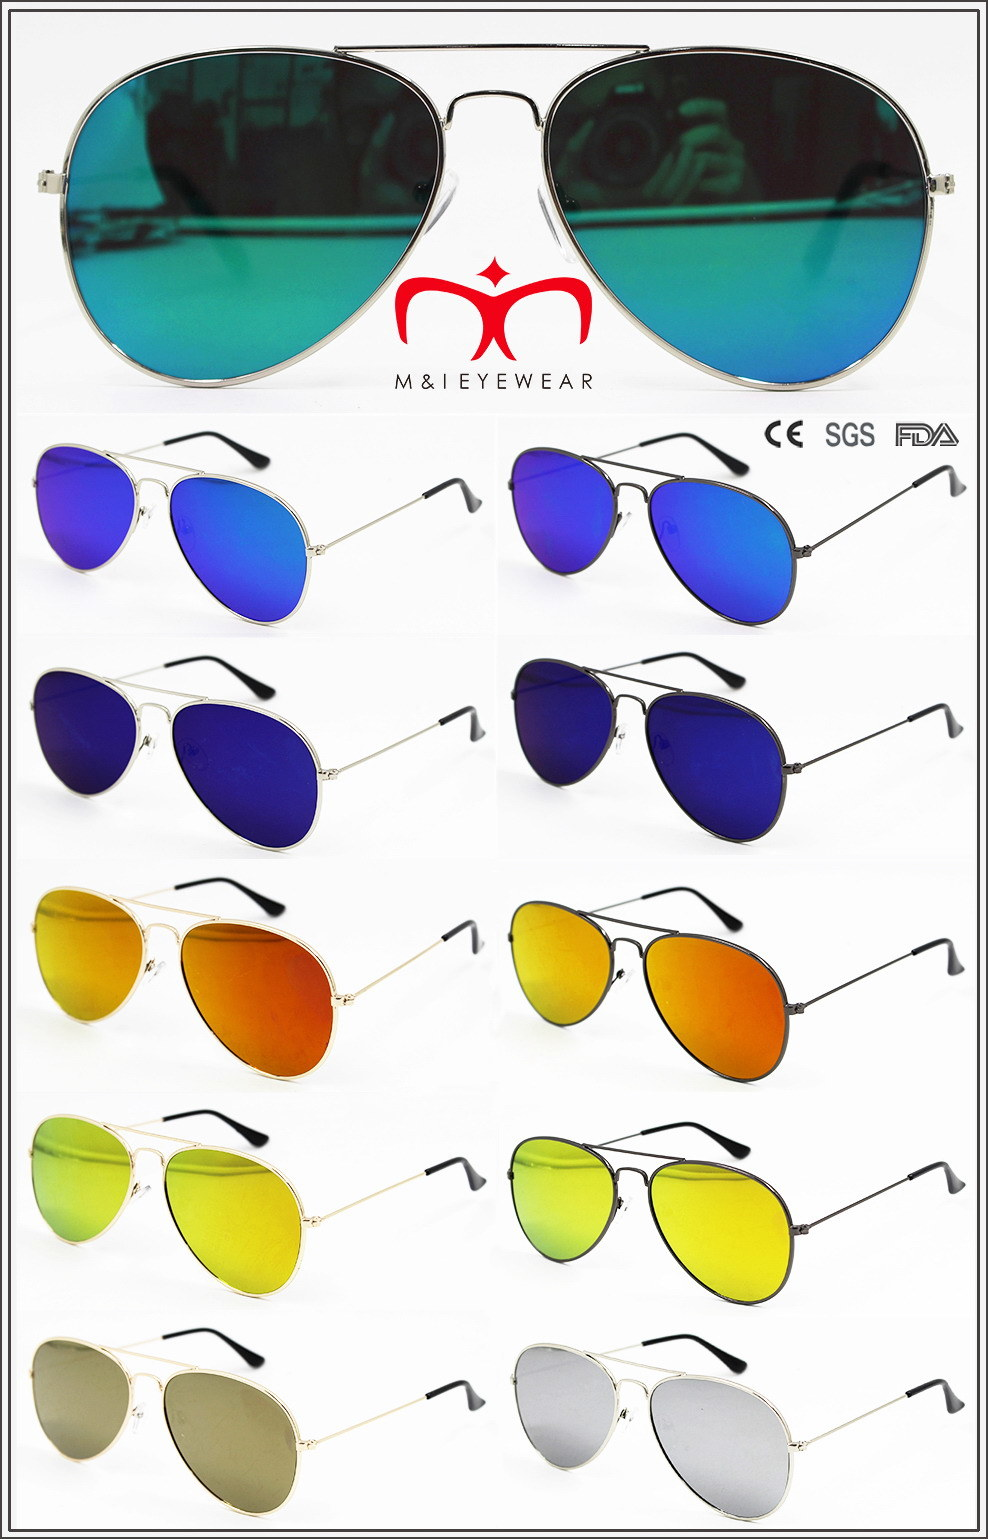 New Fashion Metal Sunglasses with Flat Lens (MI160223)